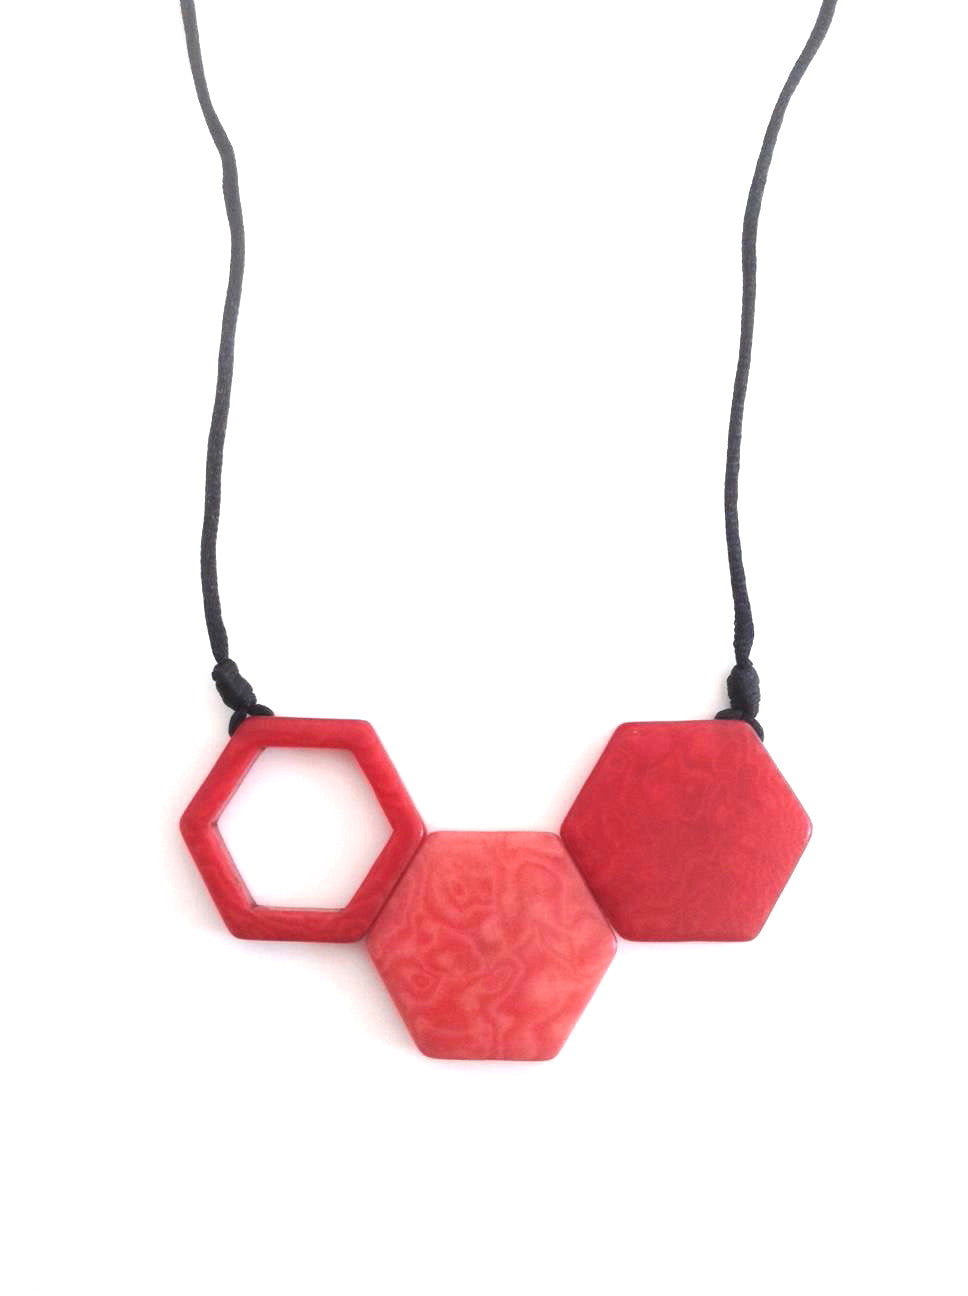 Rombos Necklace - Red & Pink Tones